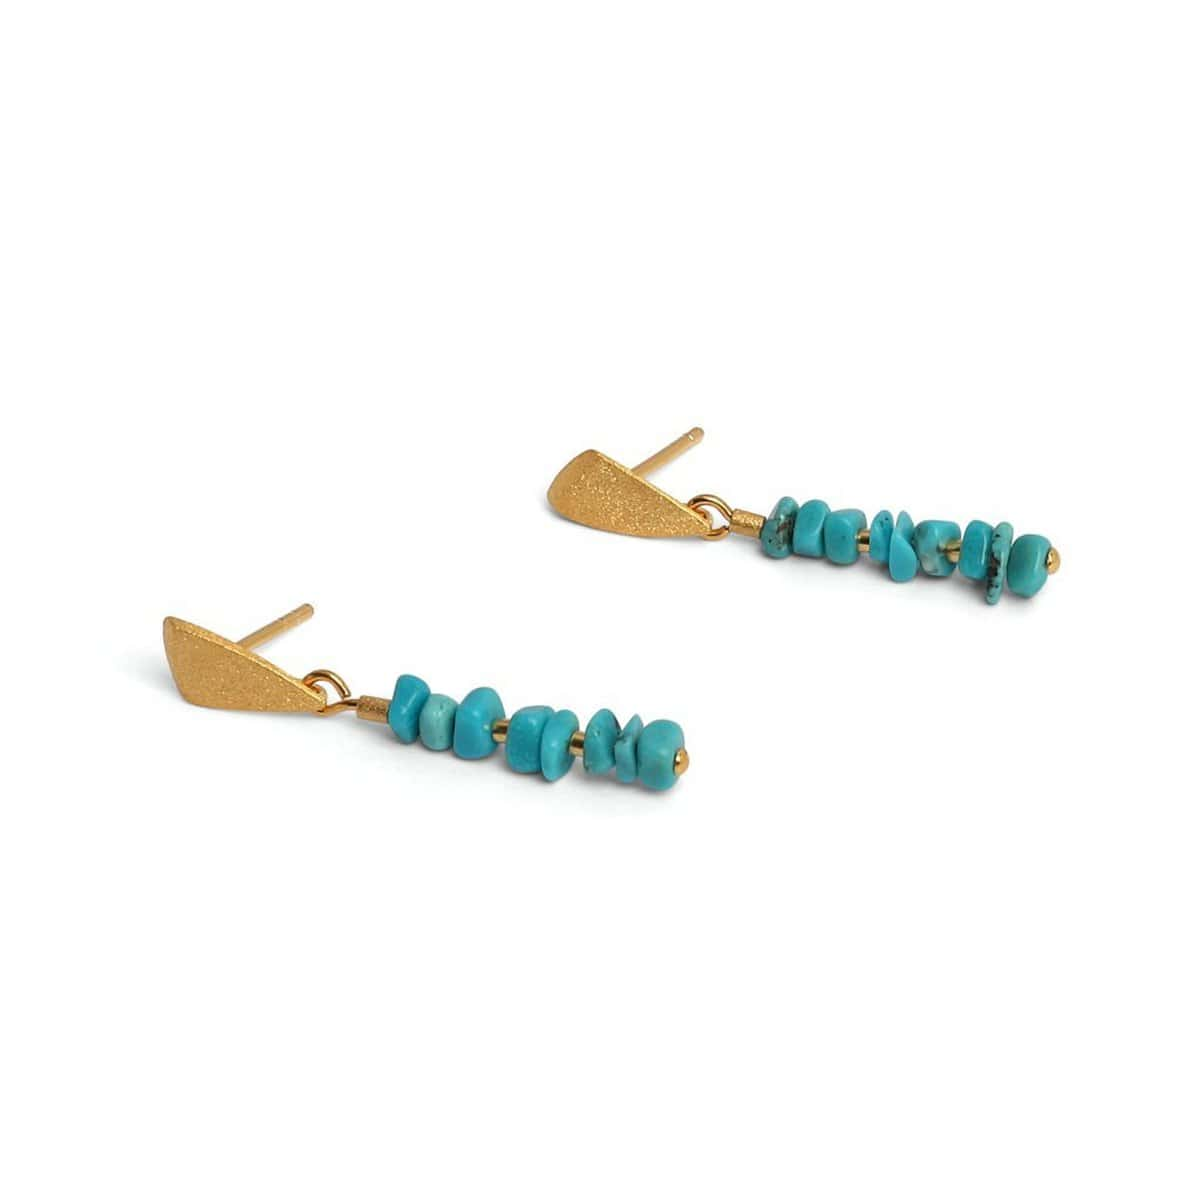 Chipas Turquoise Earrings - 15956256-Bernd Wolf-Renee Taylor Gallery